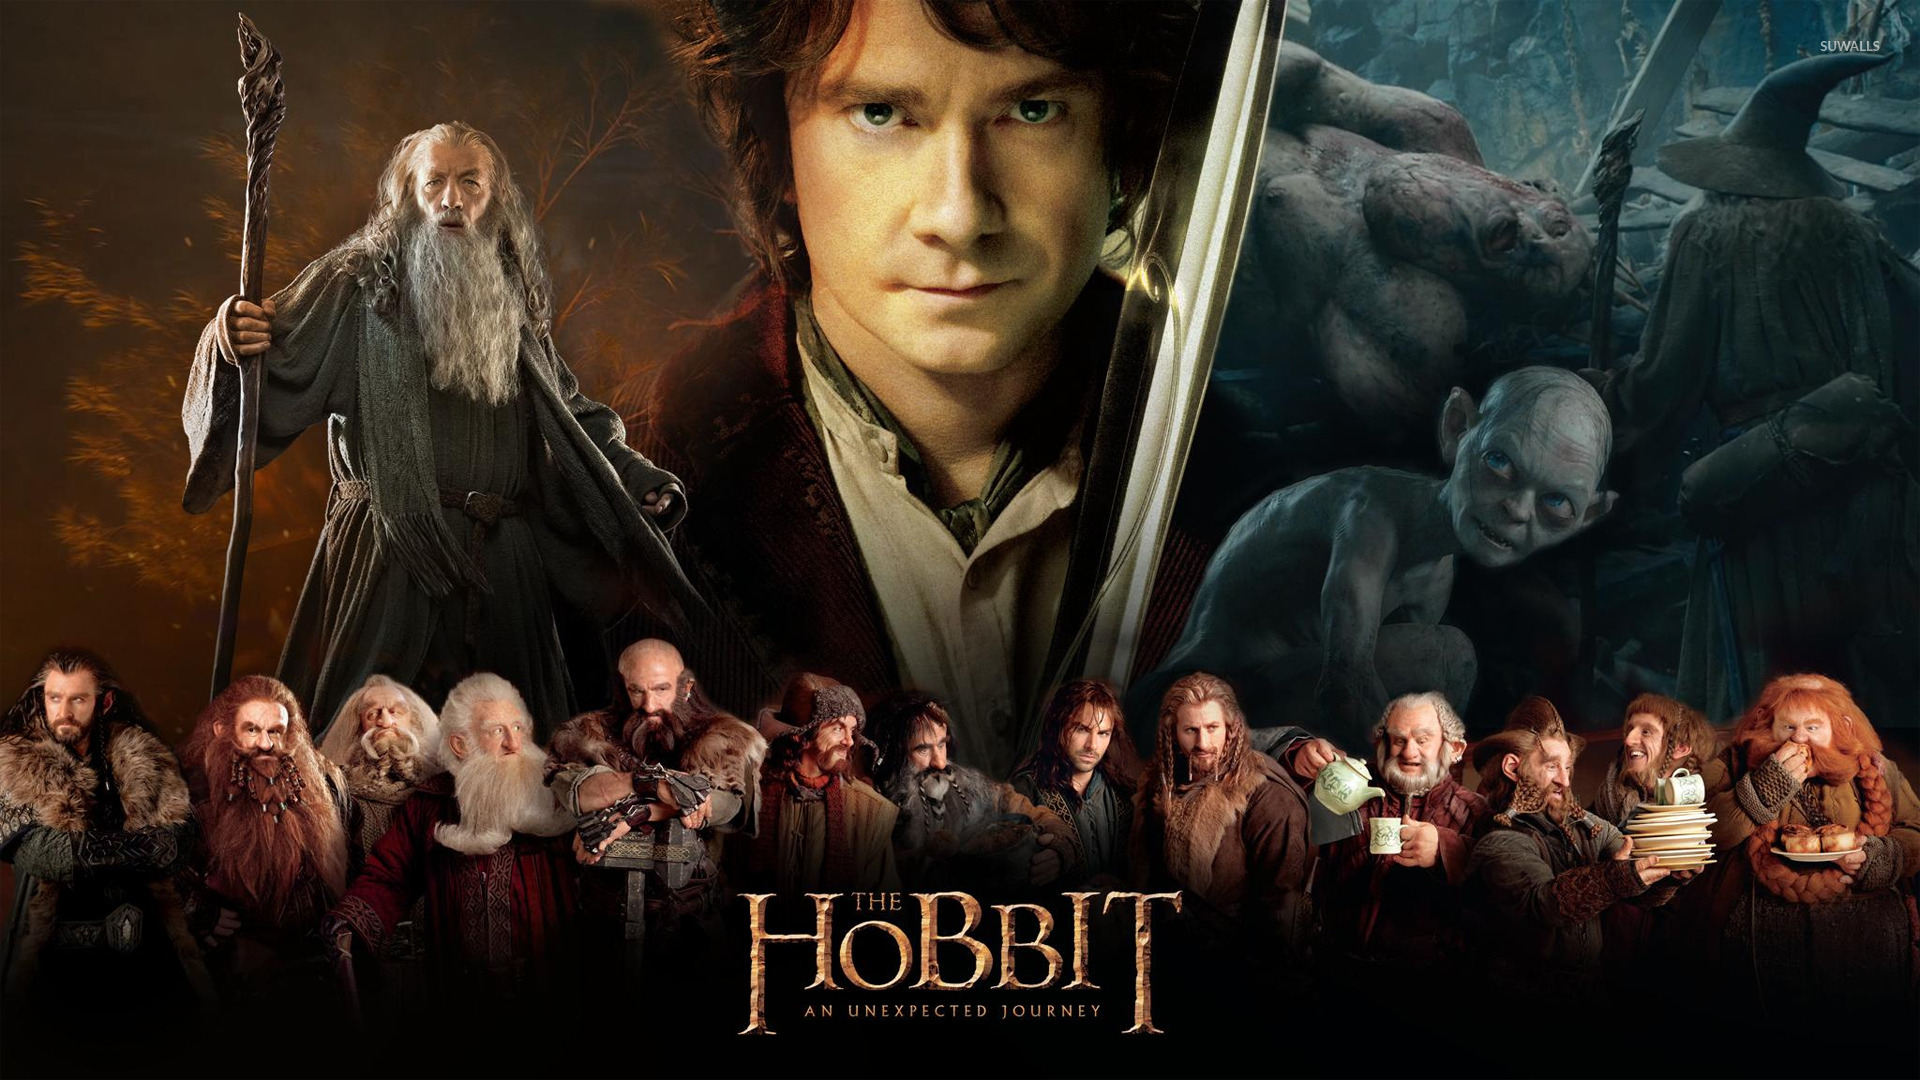 the hobbit movie wallpapers - photo #22